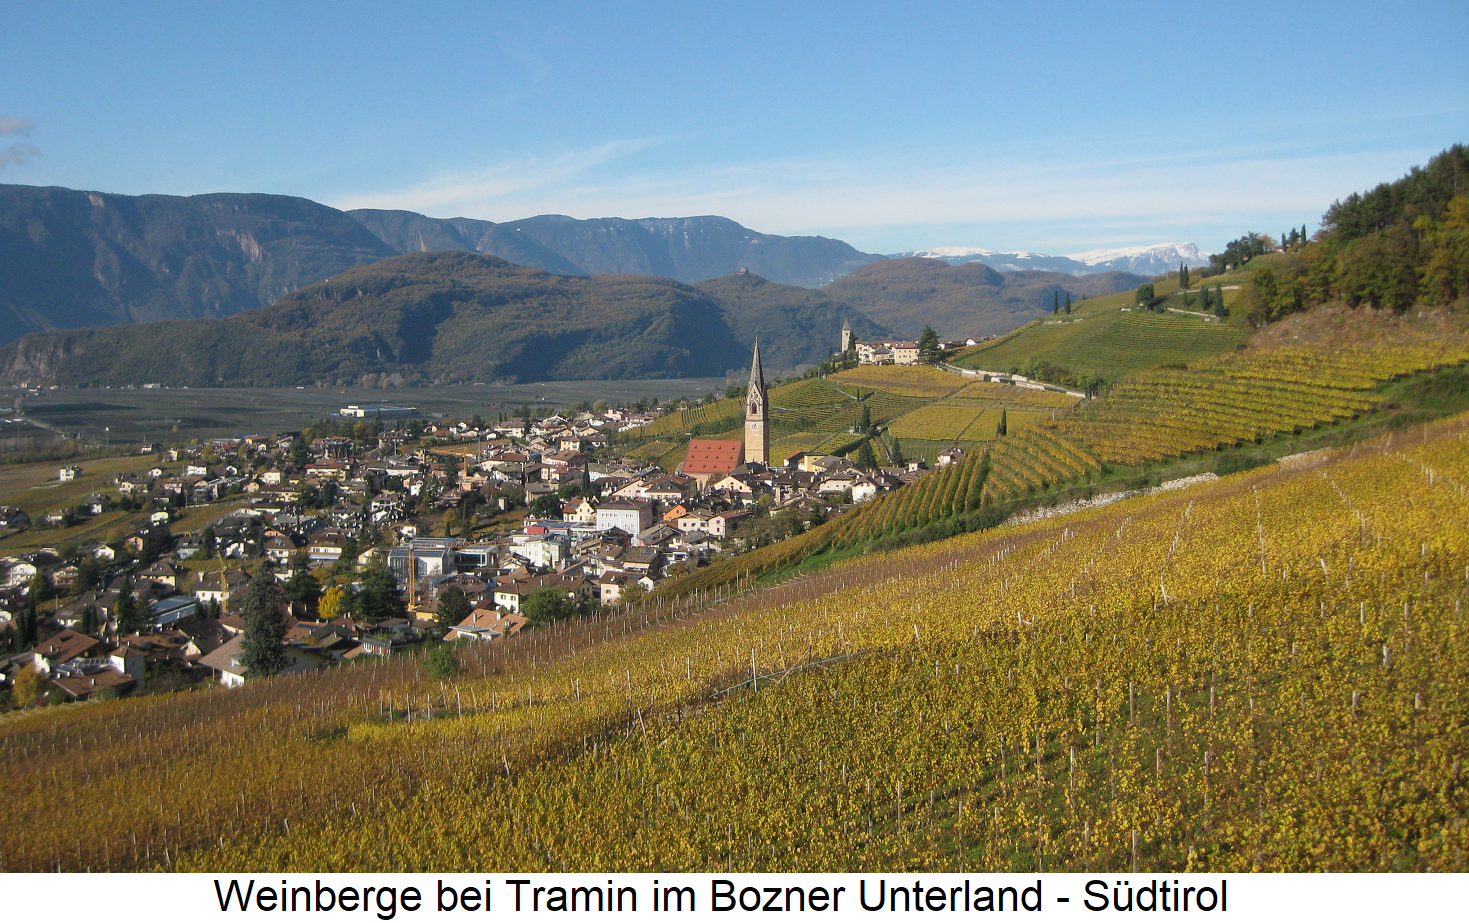 South Tyrolean - Vineyards near Tramin in the Bozner Unterland